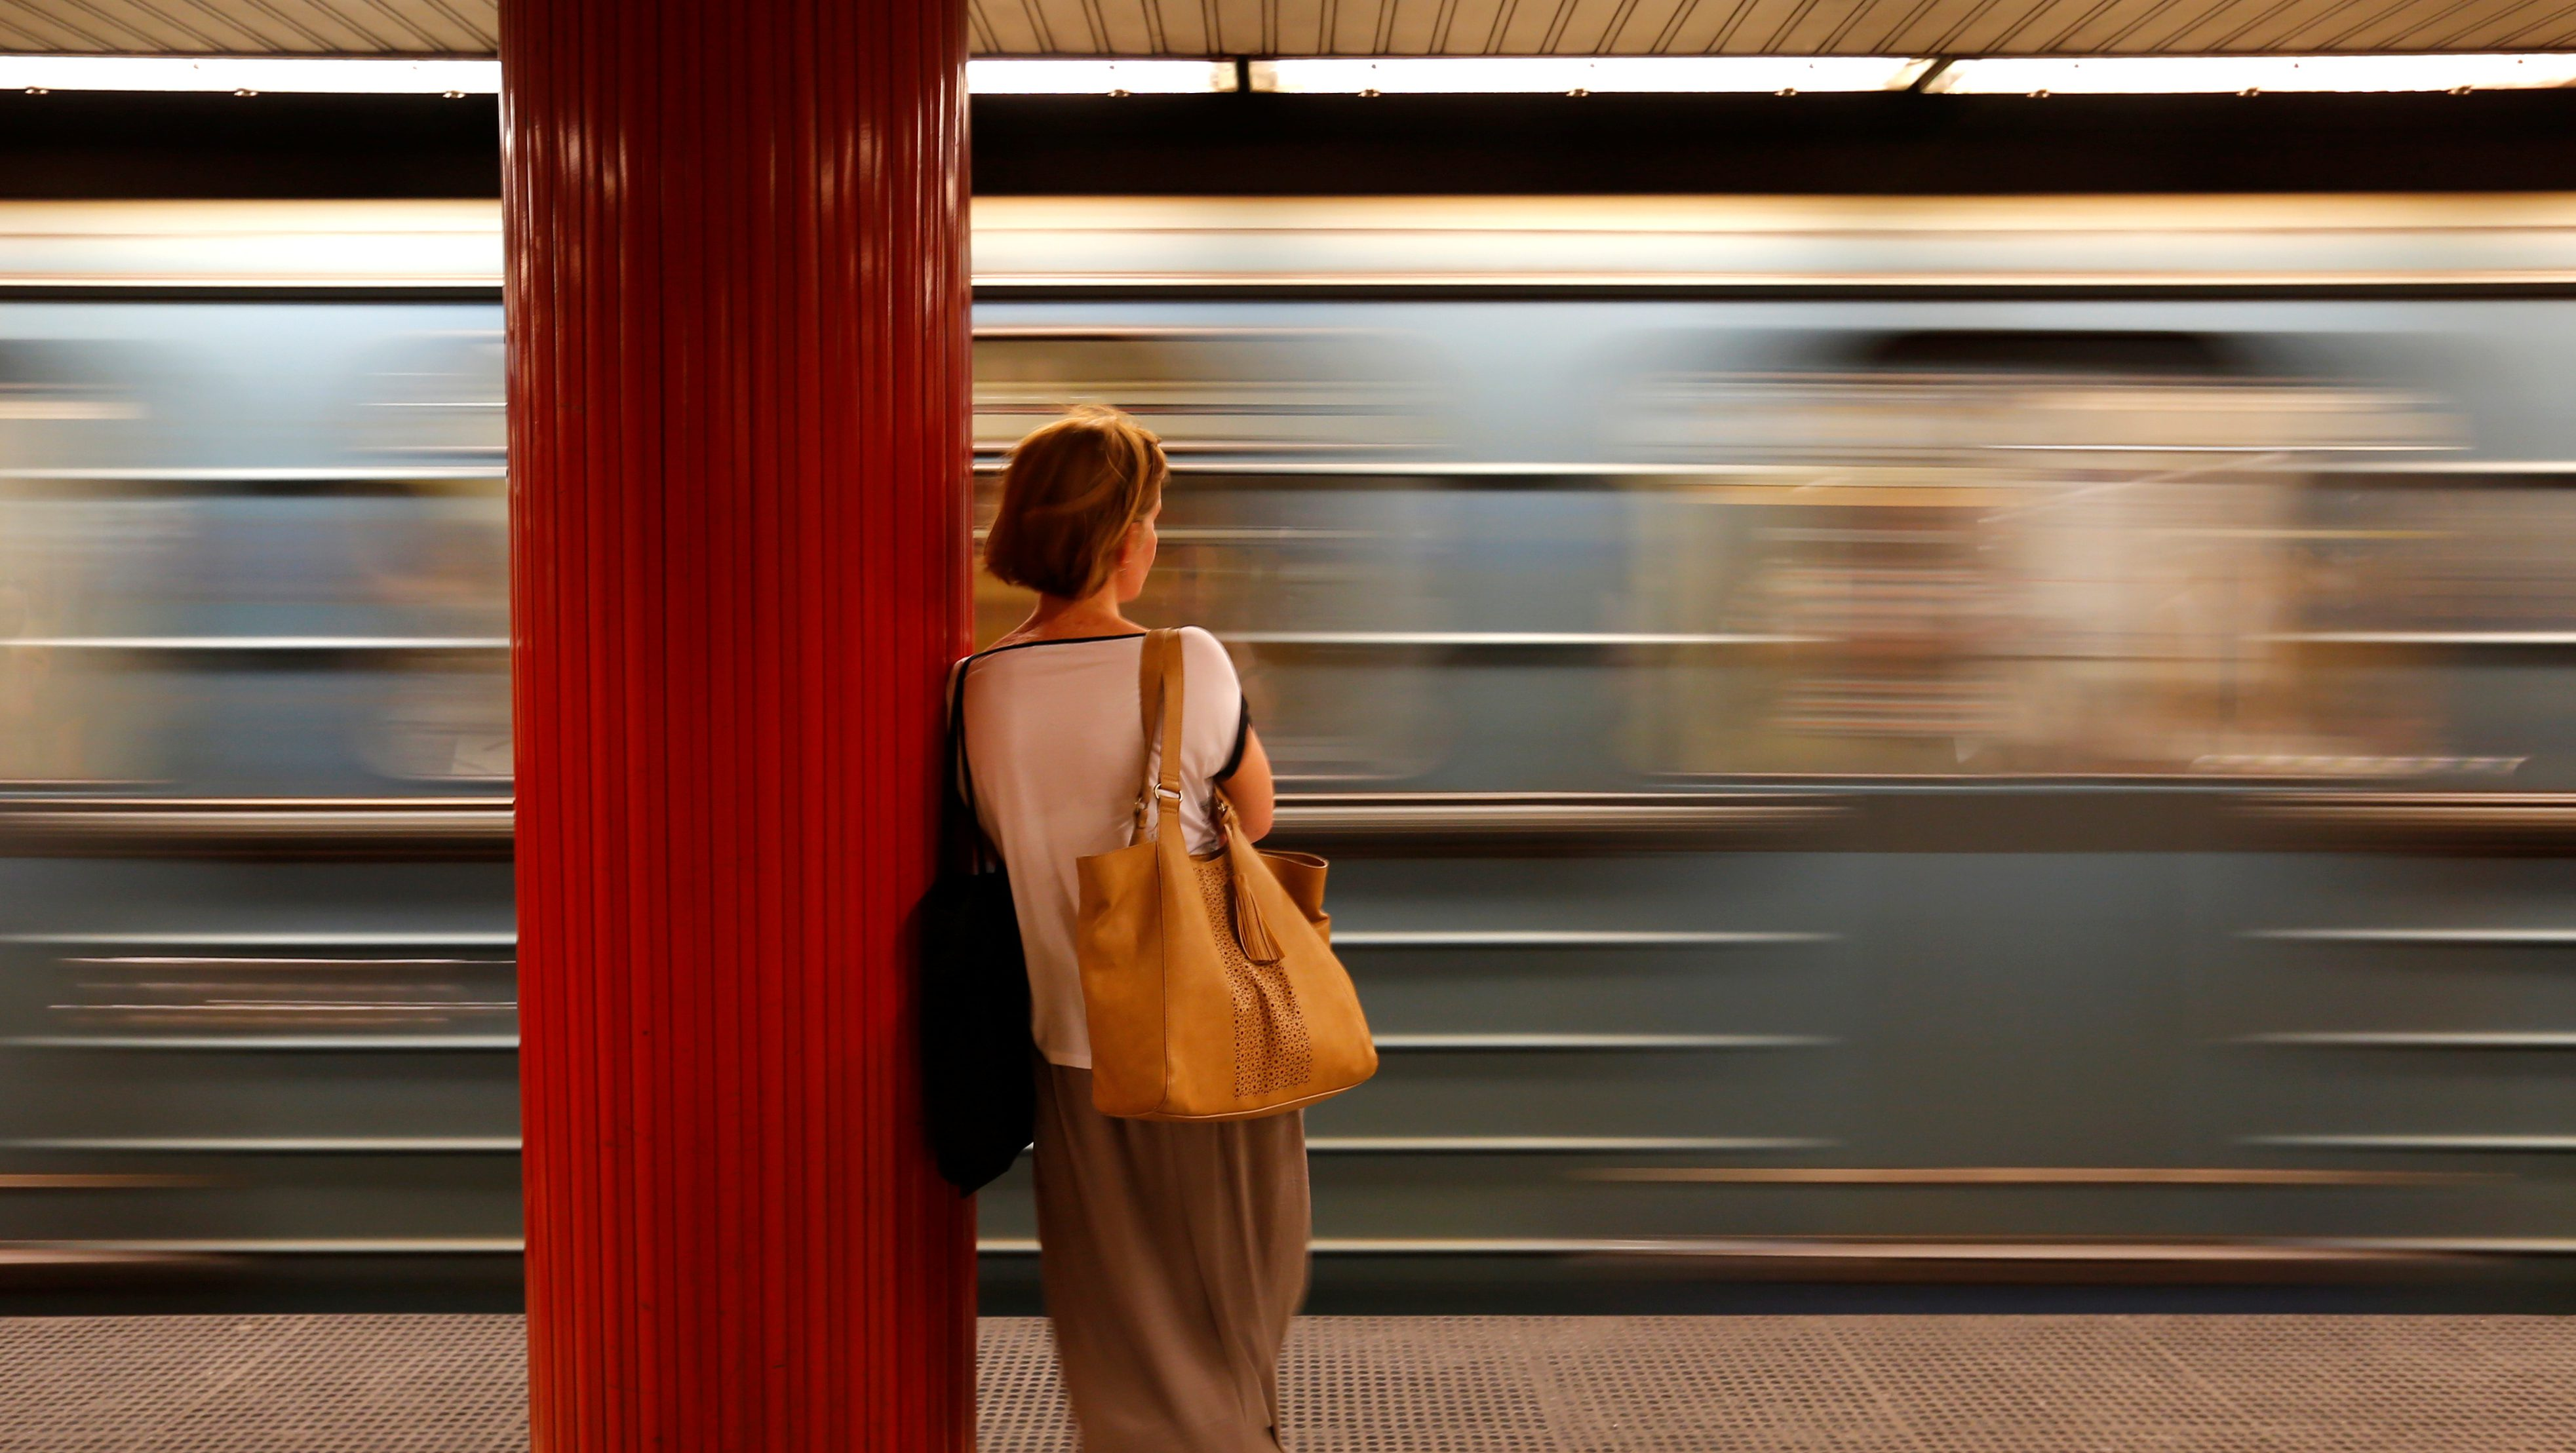 A commuter waits for a train at a subway station in Budapest.